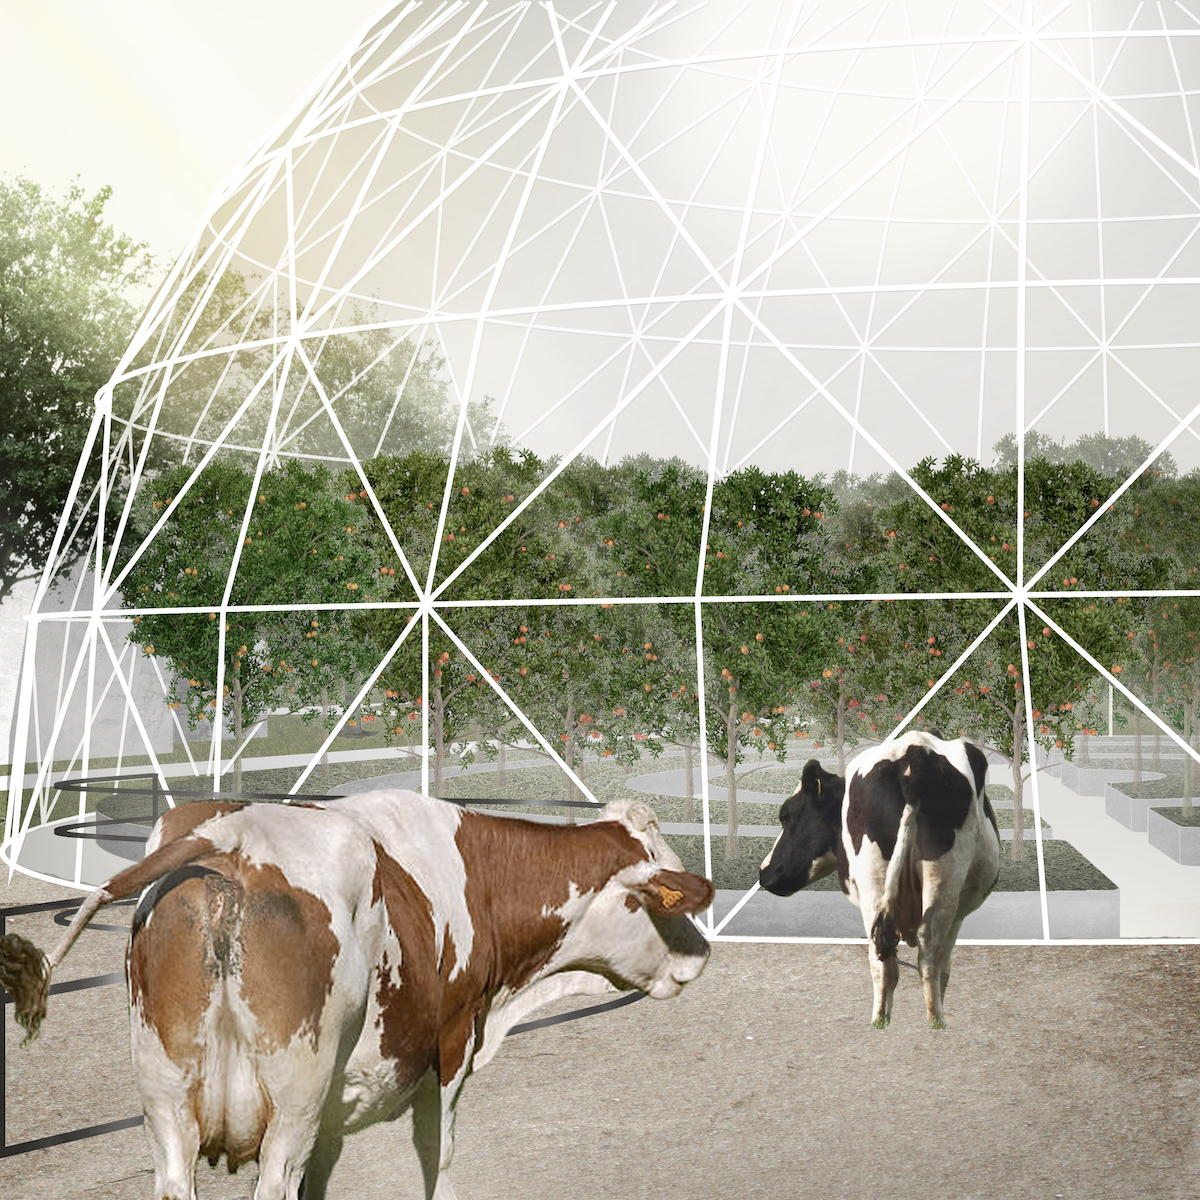 rendering with cows and dome